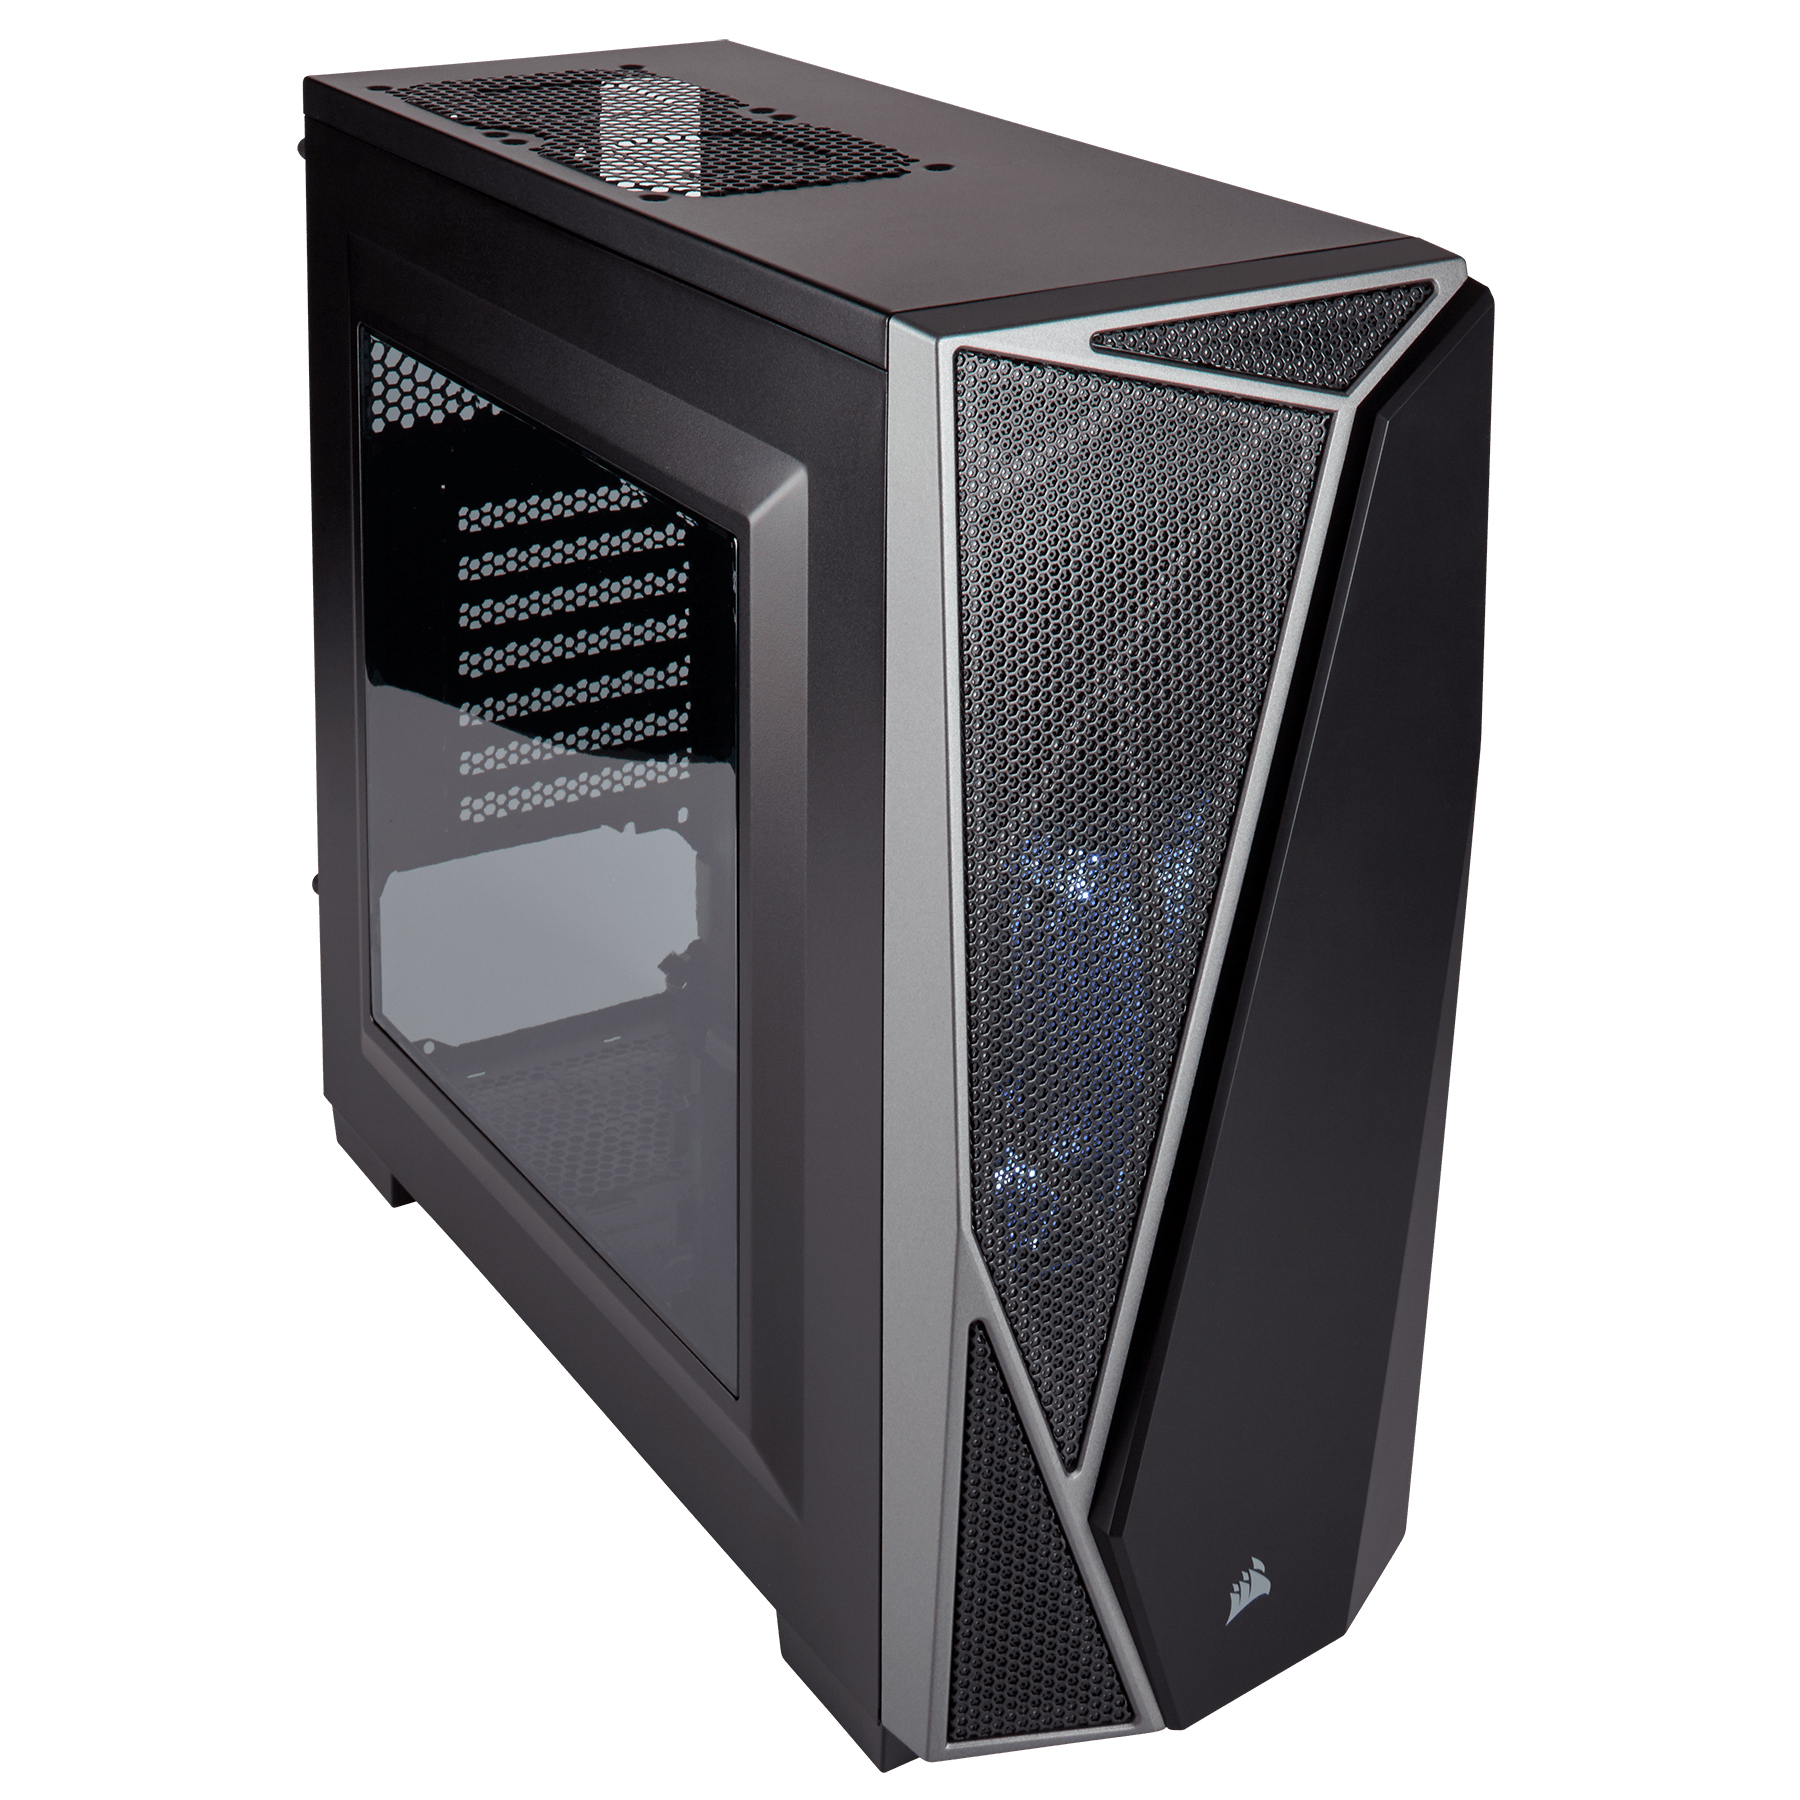 CASE CORSAIR GAMING P4 MIDDLE TOWER SPEC-04 CARBIDE SERIES BLACK/GREY CC-9011109-WW ,Case & Power Supply